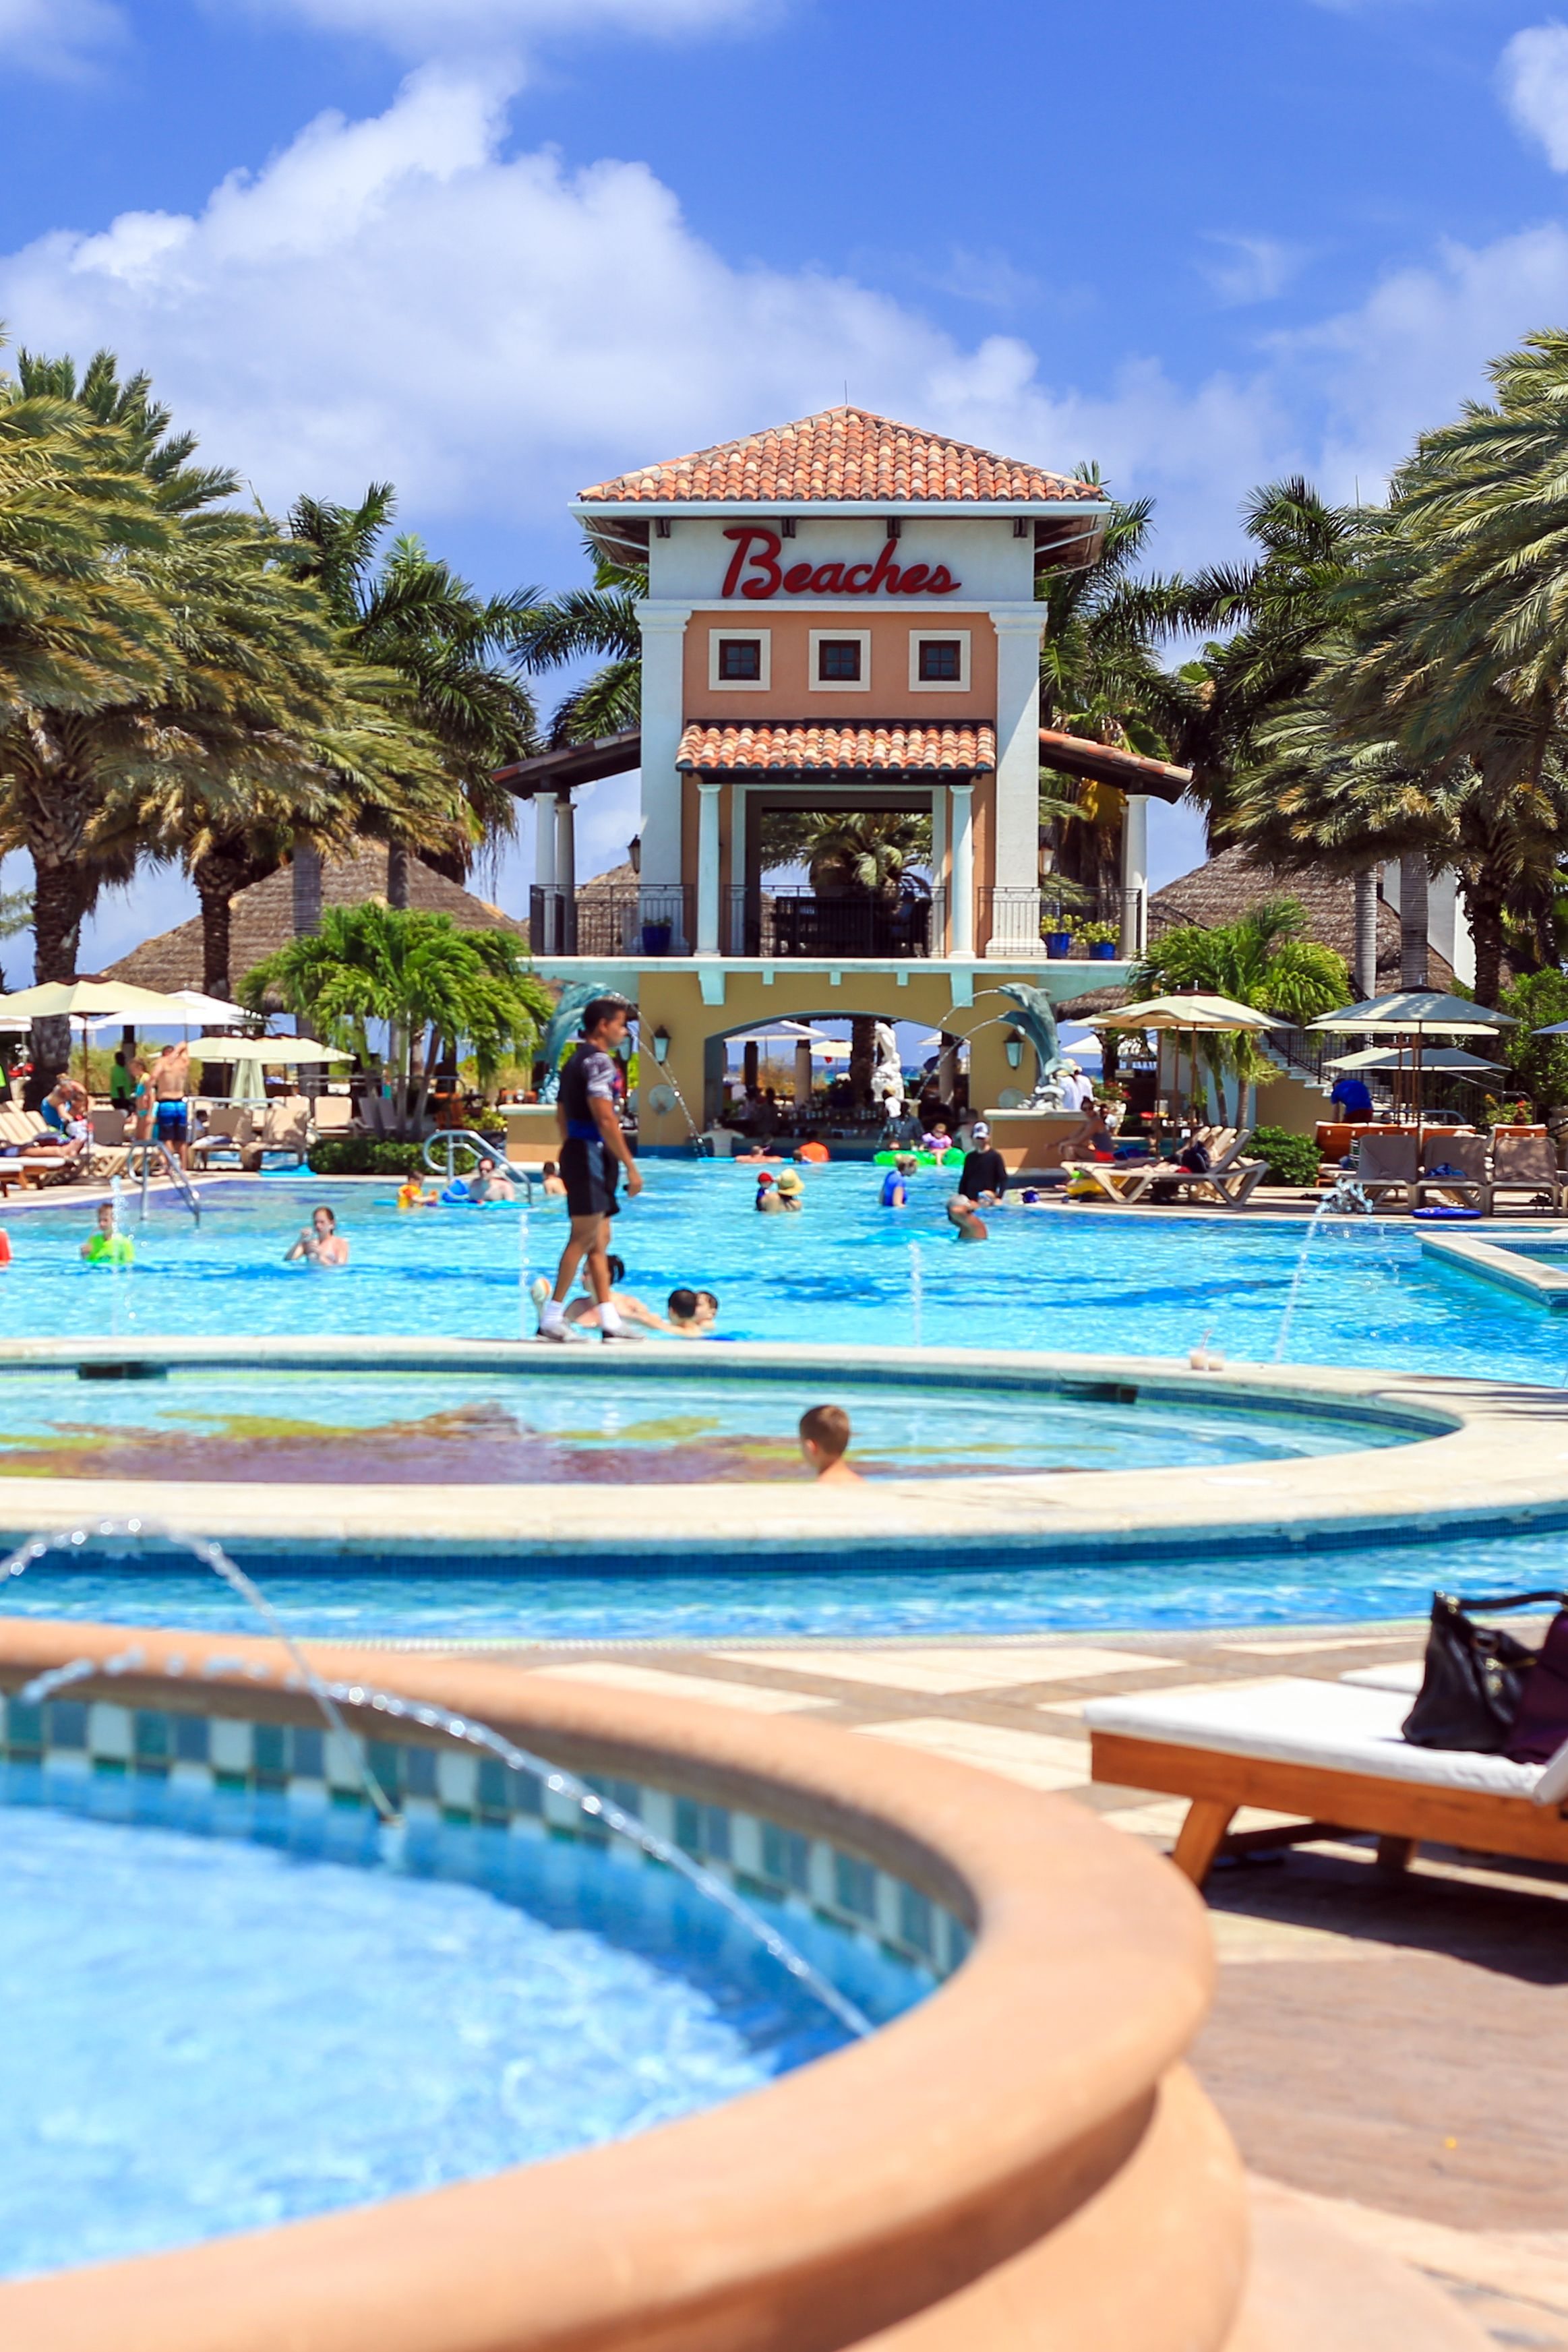 How To Get The Best Deal At Beaches Resorts